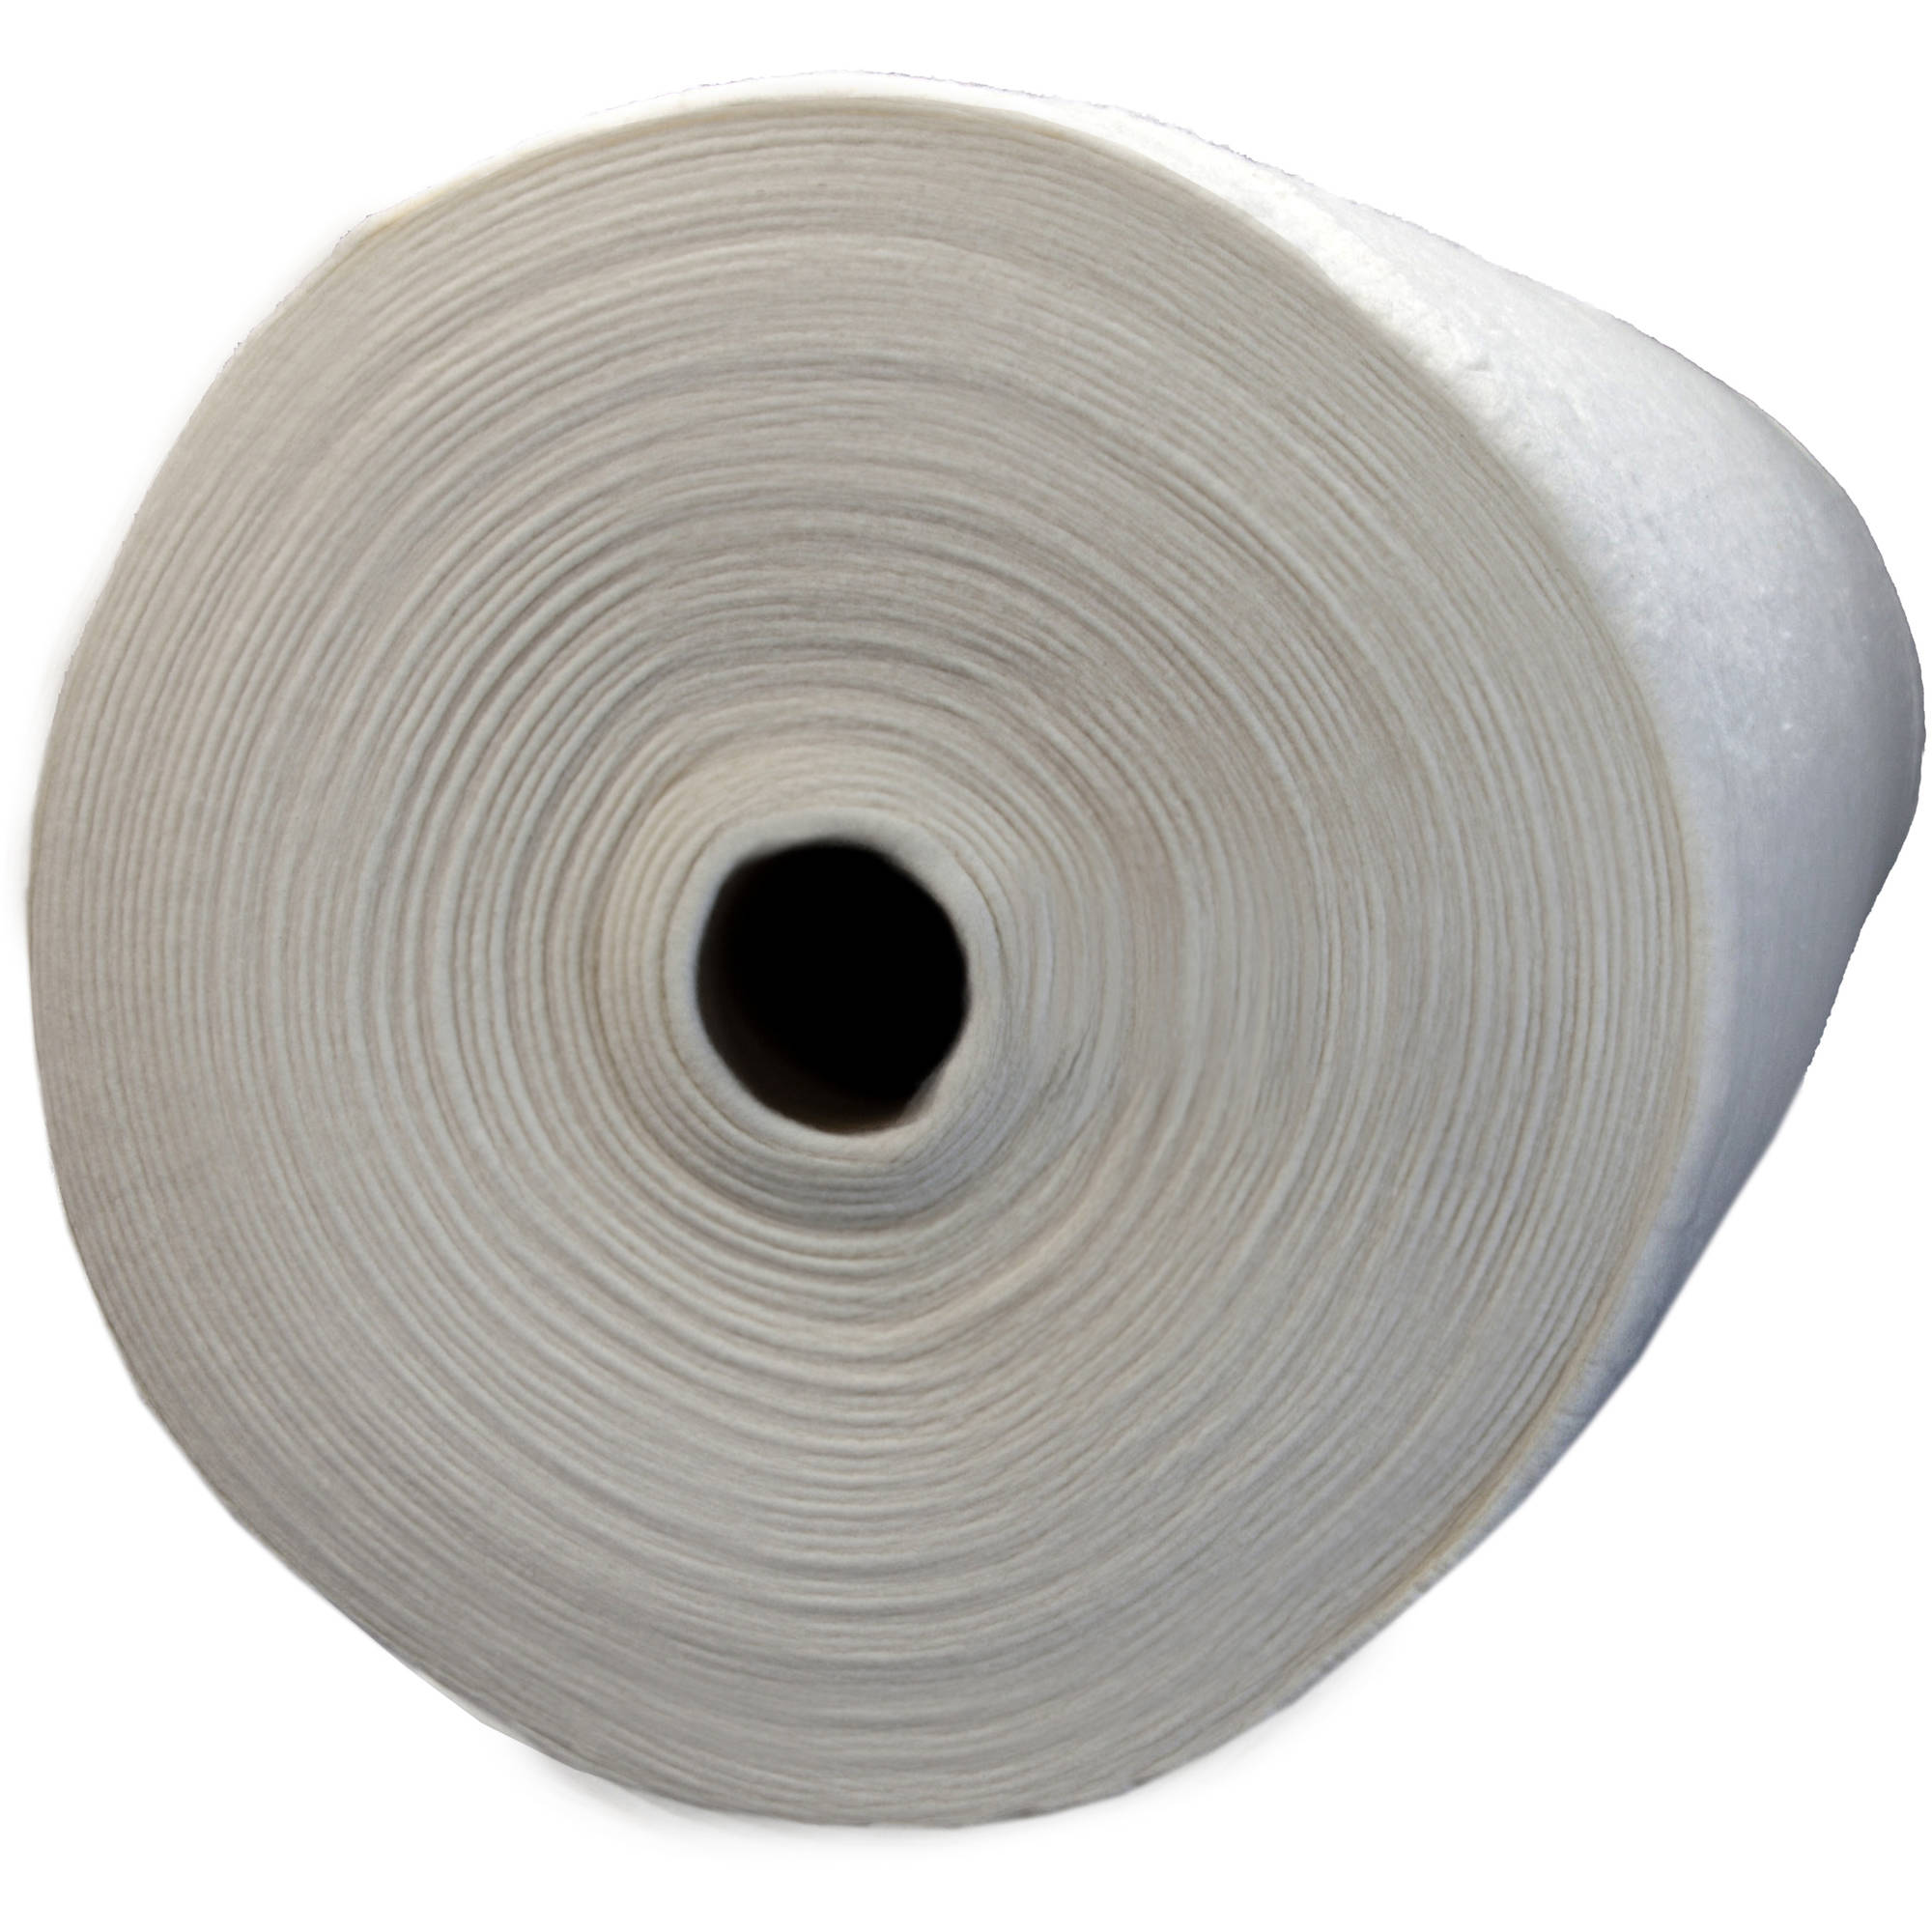 "Pellon Natures Touch Natural Cotton with Scrim Batting, 90"" Wide, 30 Yard Roll"